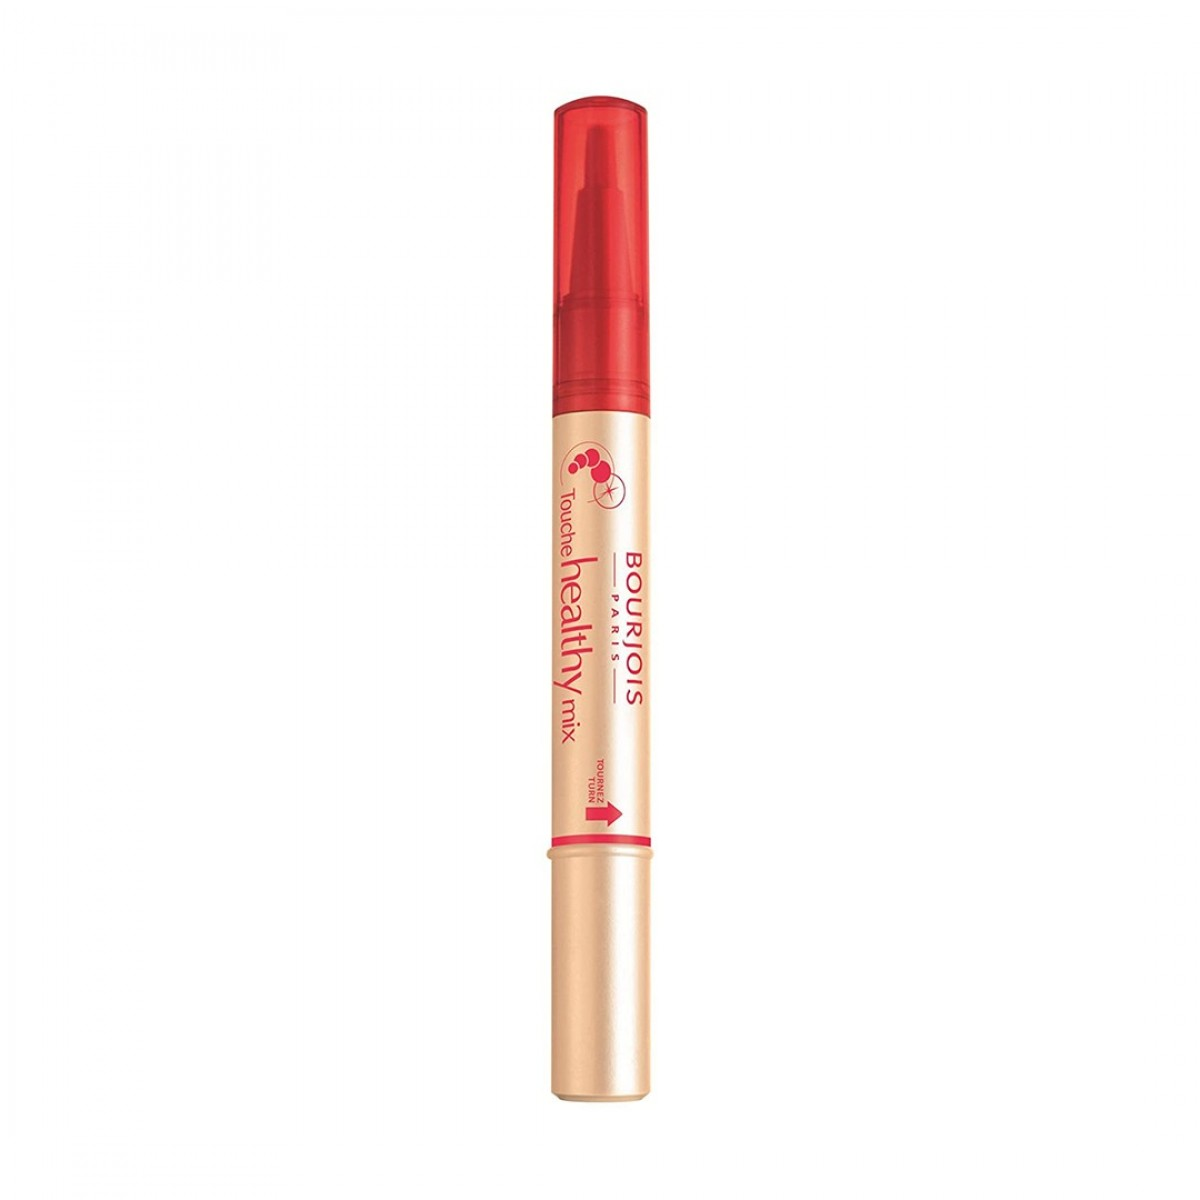 Touche Healthy Mix Brush Concealer